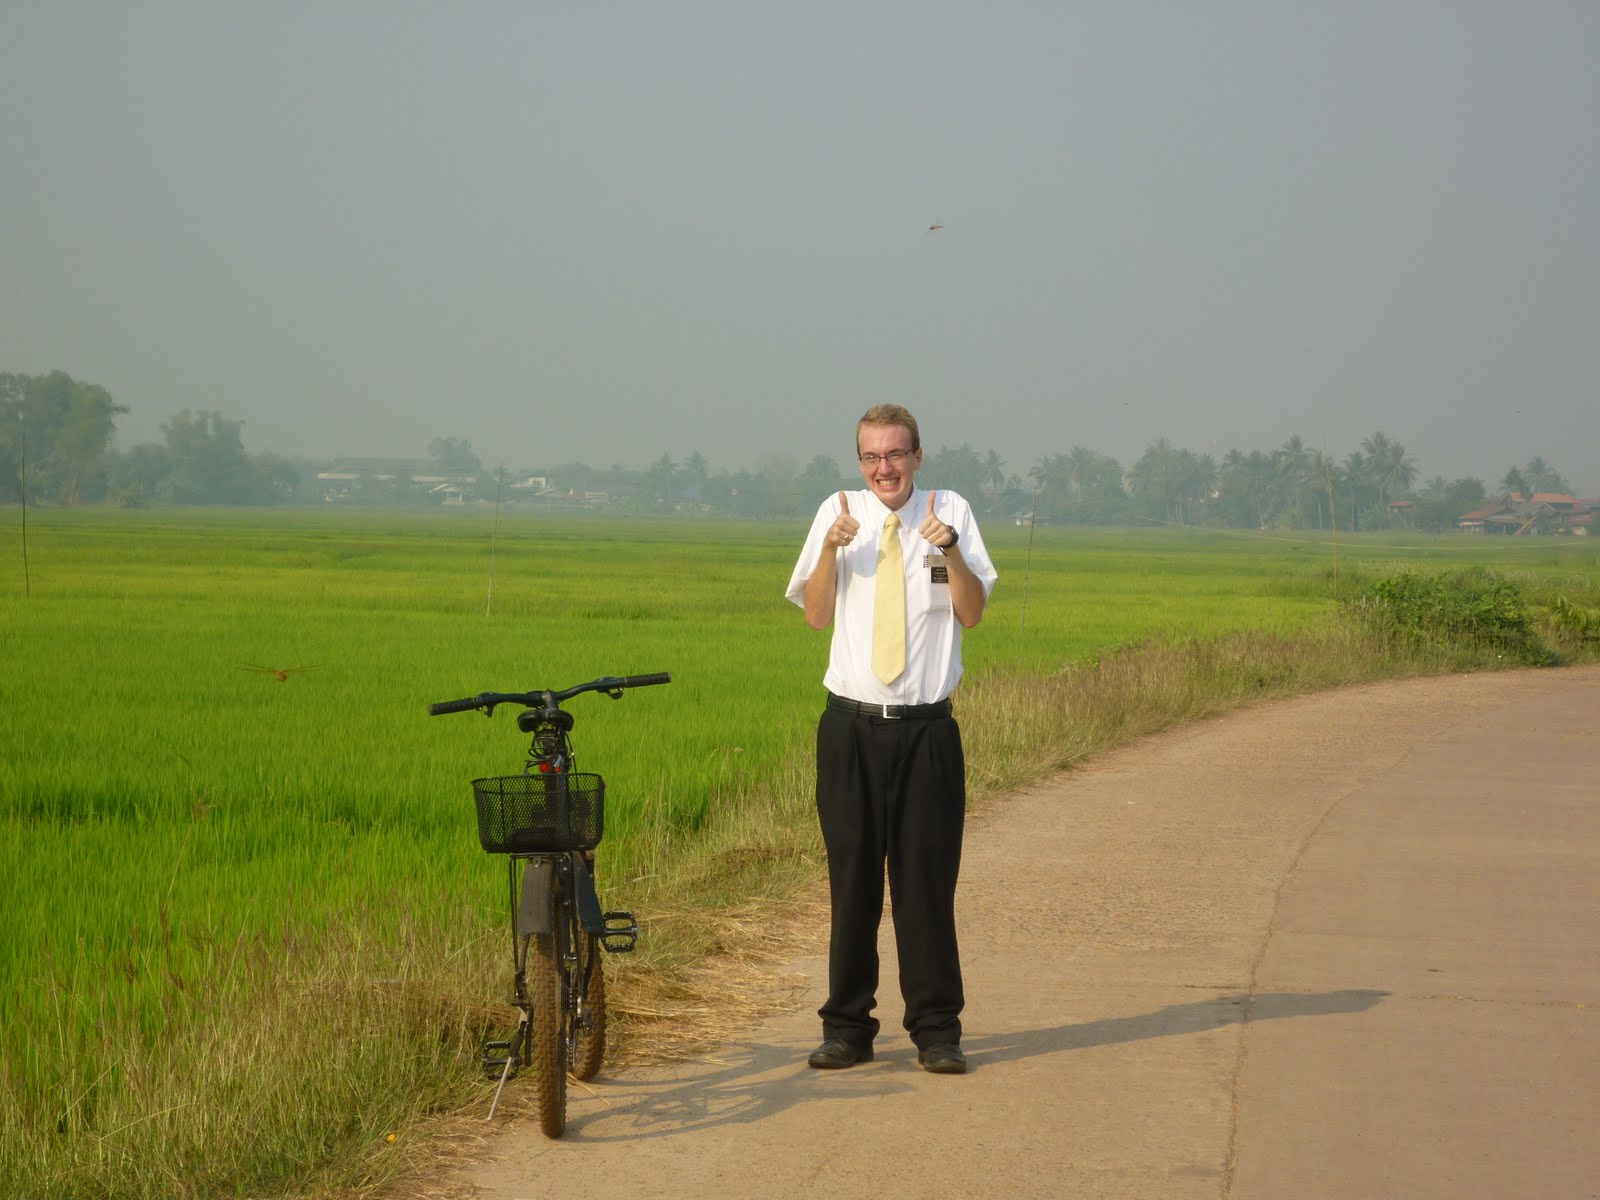 [Jake+with+bicycle+in+Nongkhai]